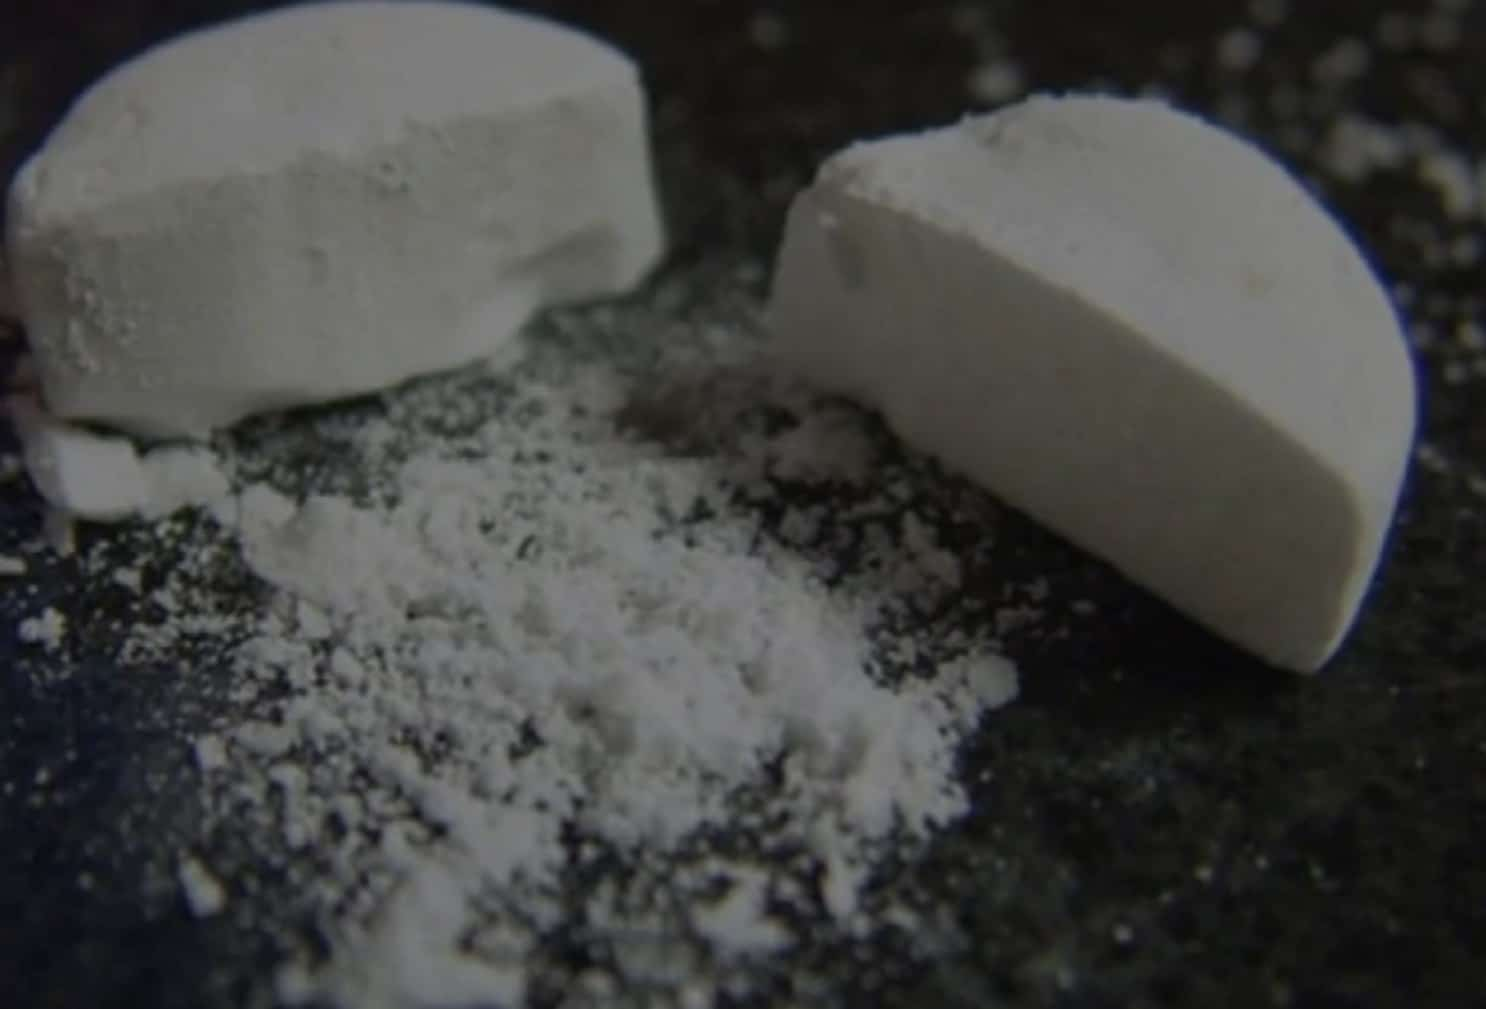 Crushed white pills on a table